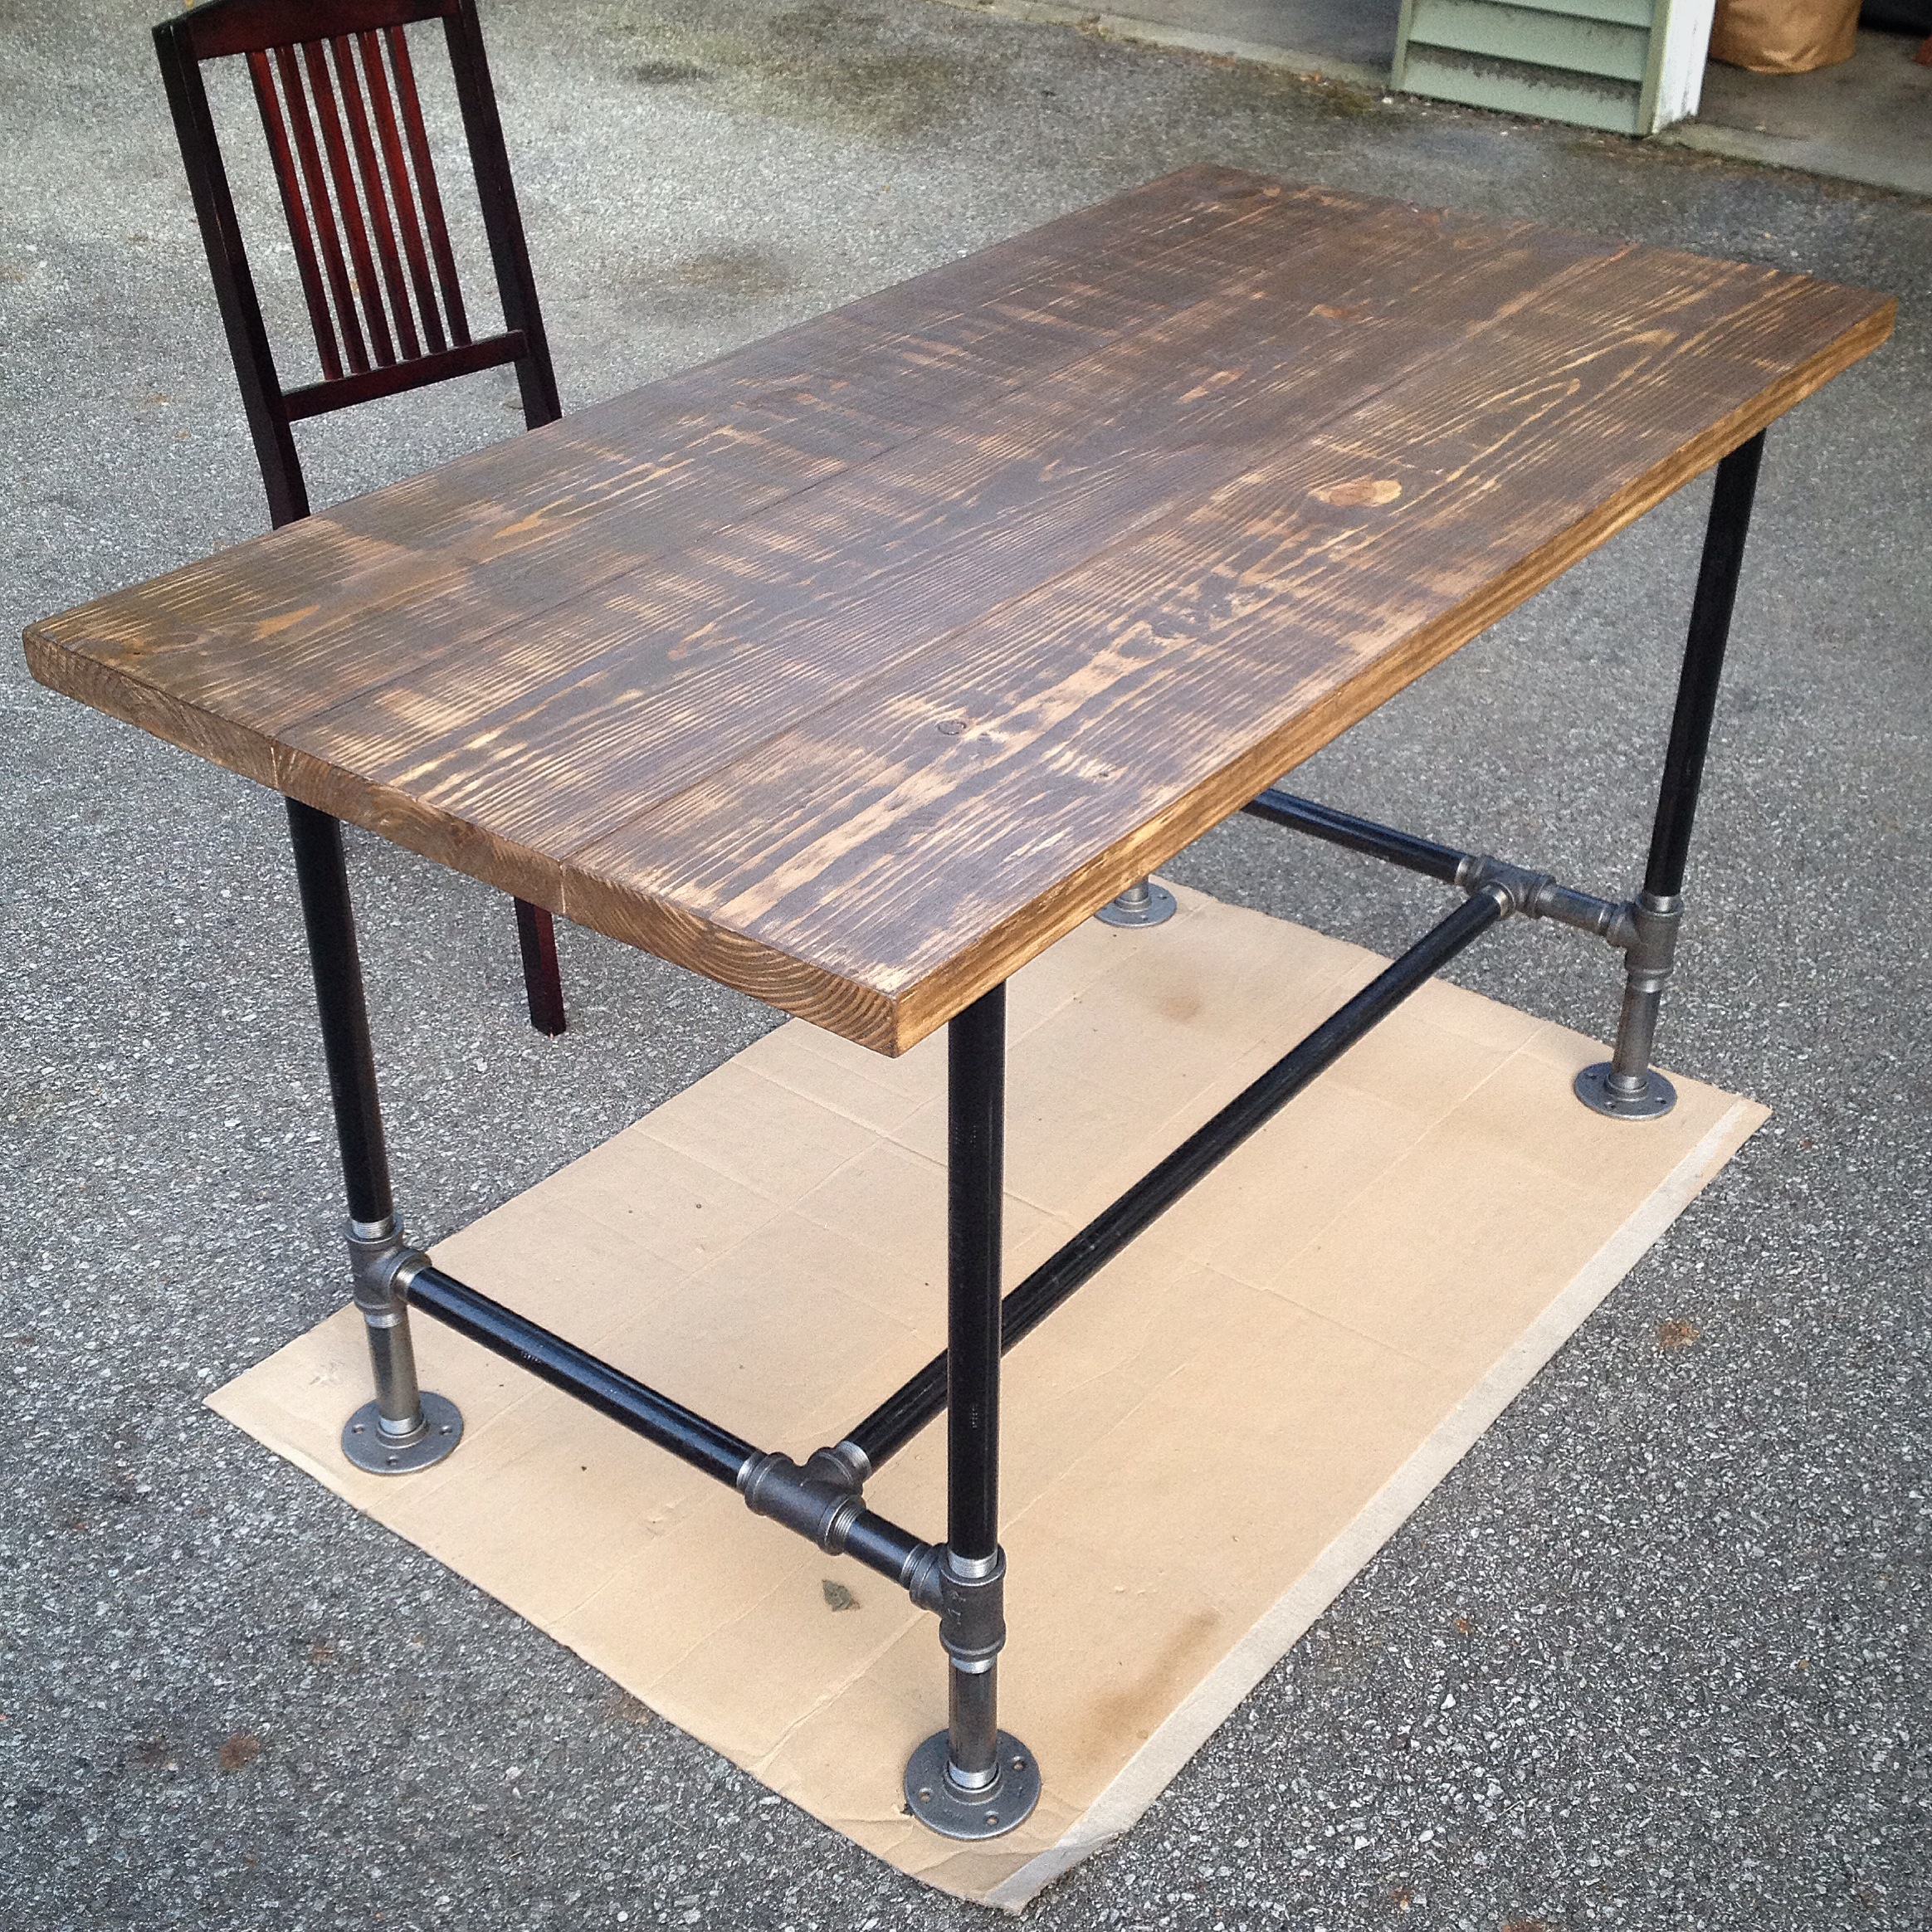 Galvanized Pipe Desk | galleryhip.com - The Hippest Galleries!